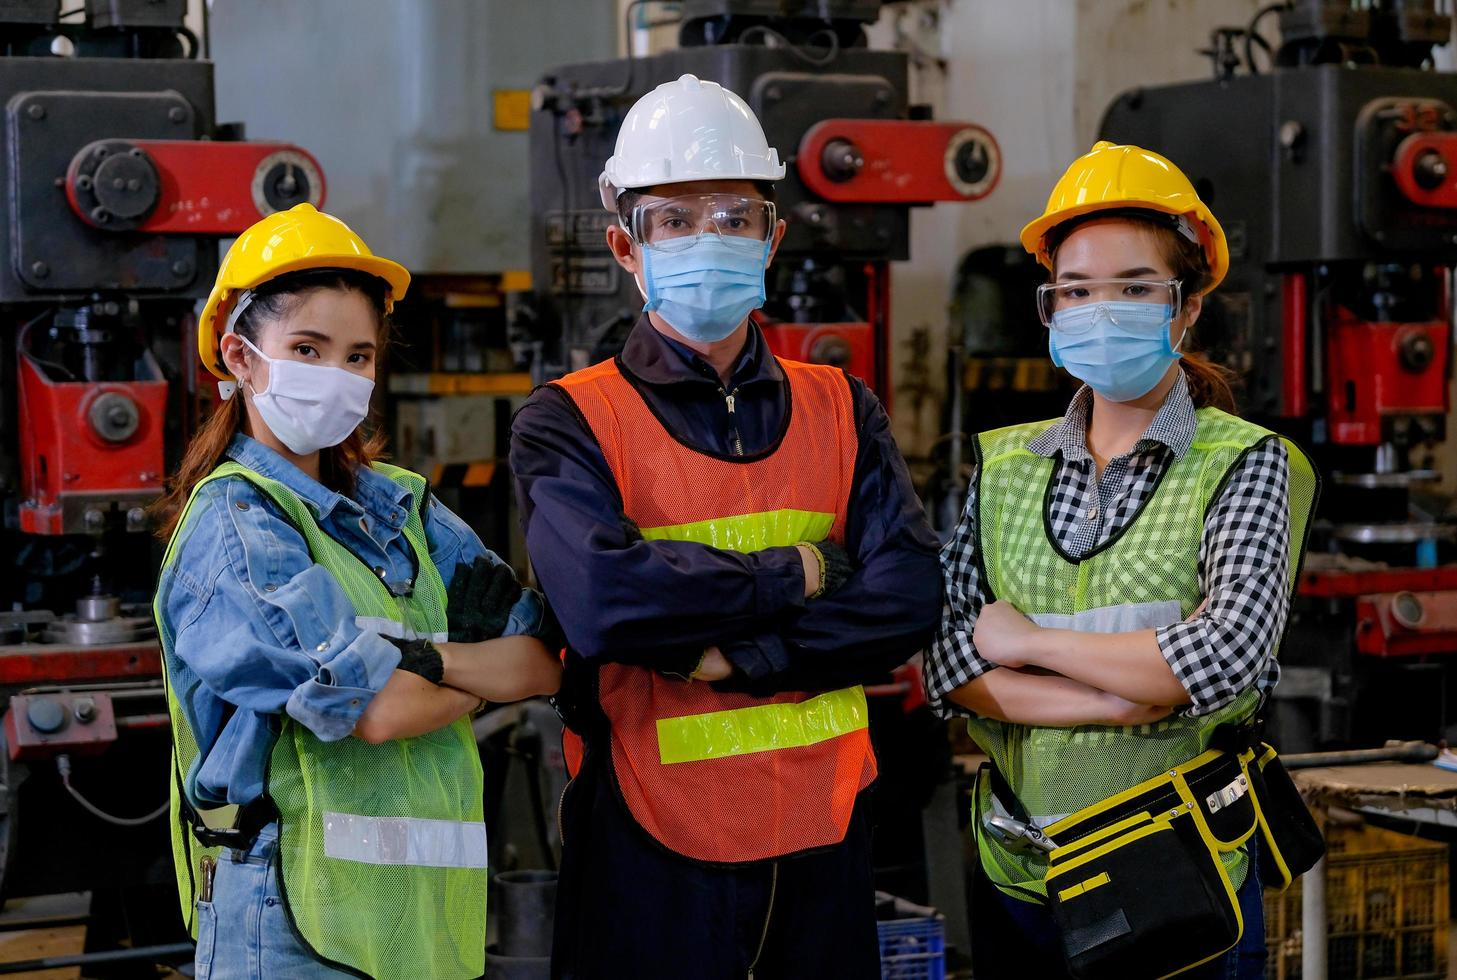 Industrial workers pose together at work photo